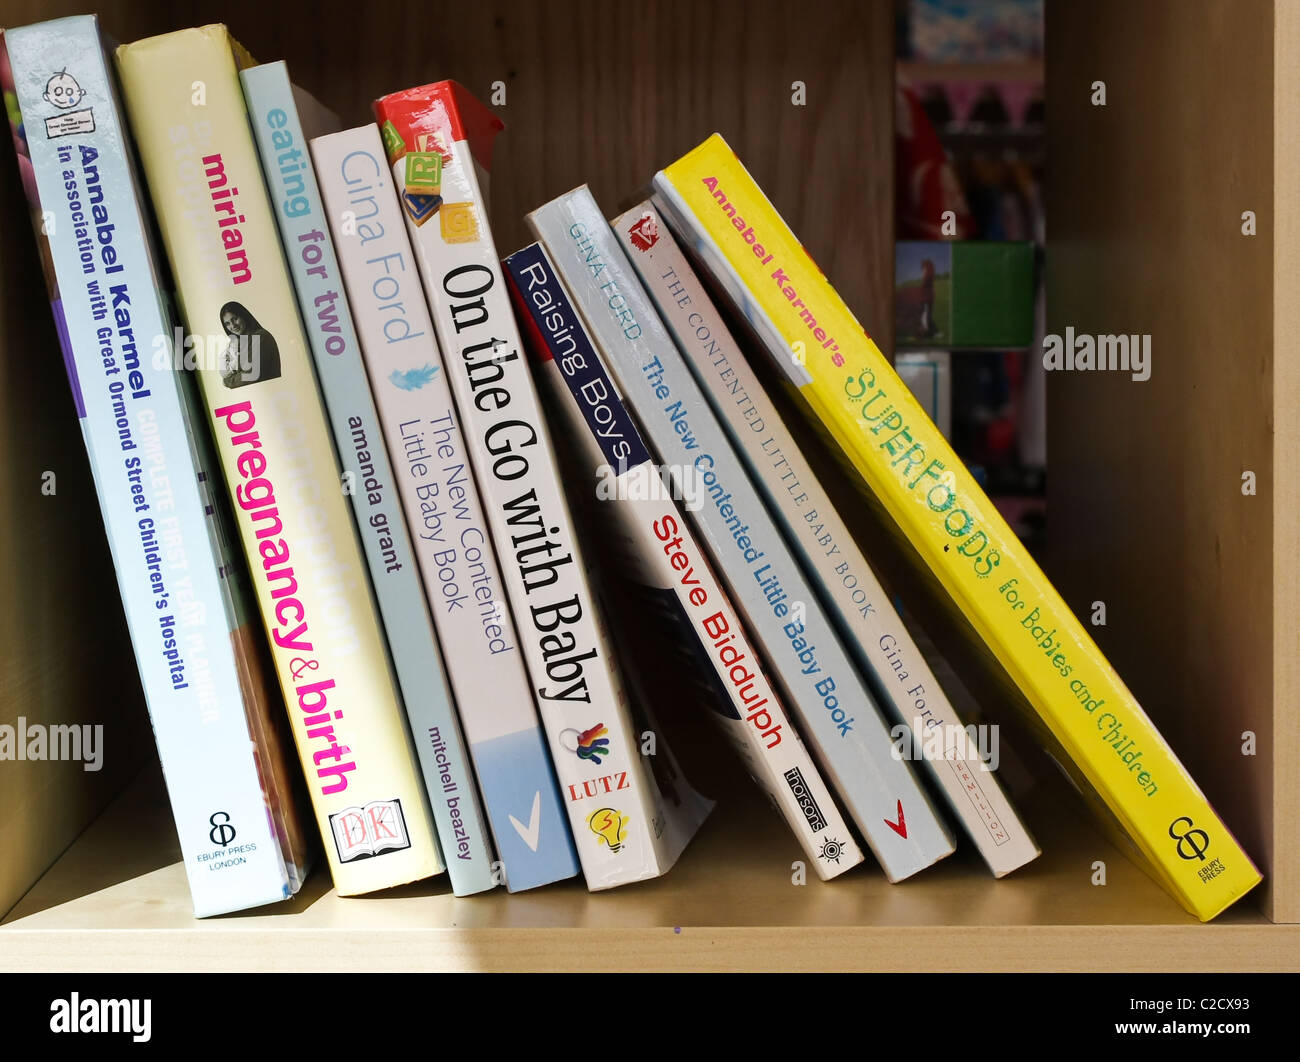 Selection of books on raising children - Stock Image